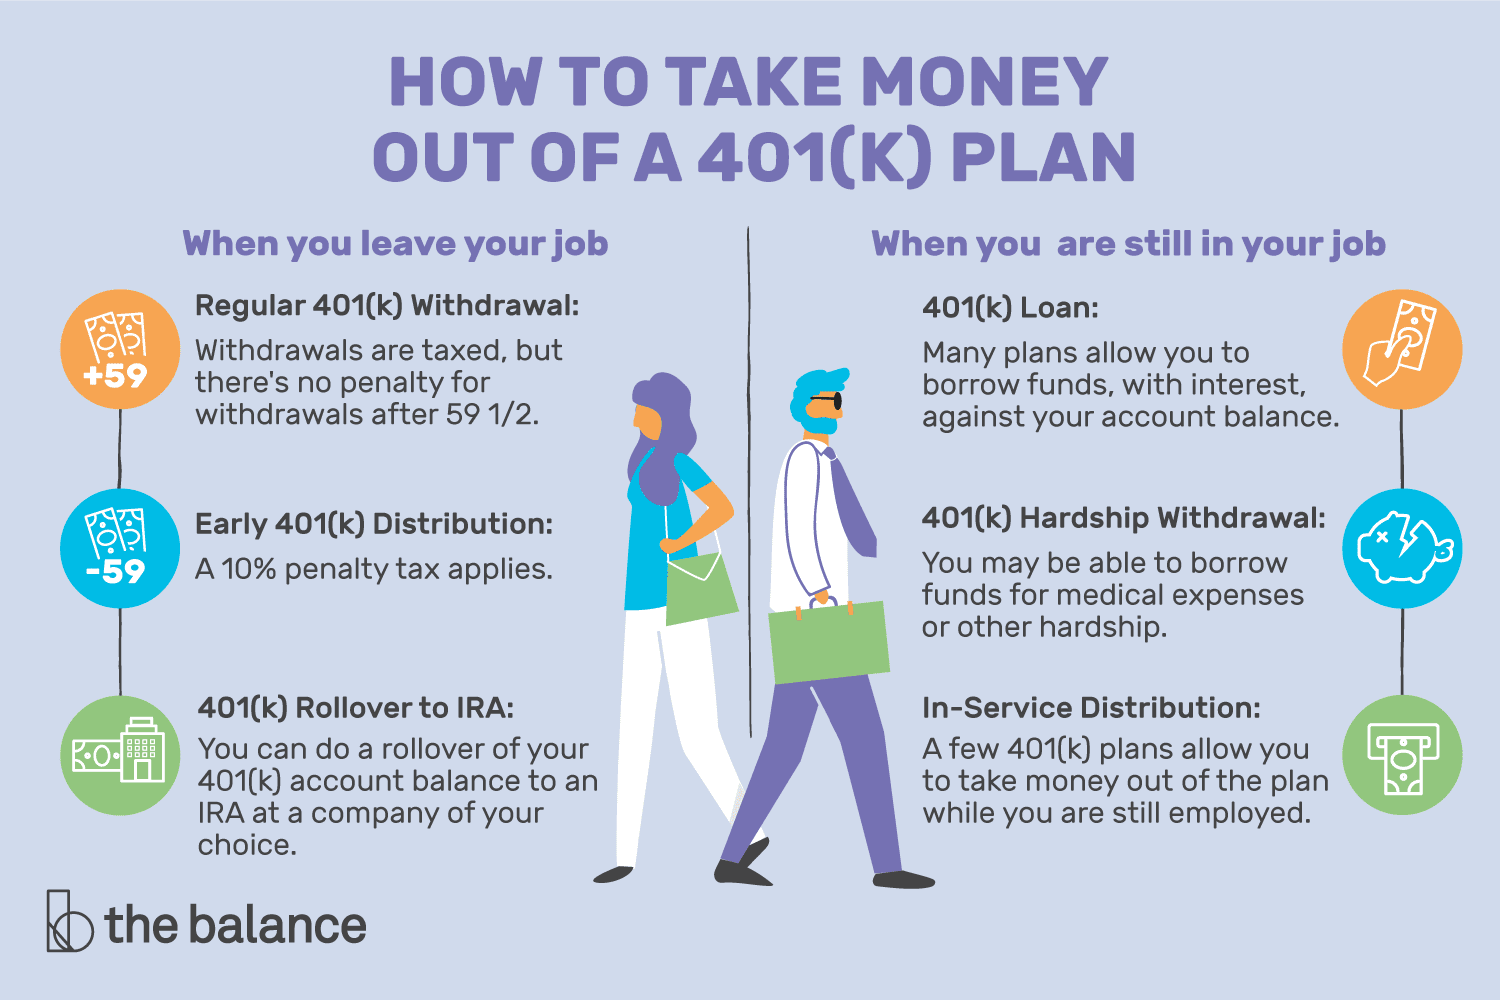 How to take money out of a 401(k) plan